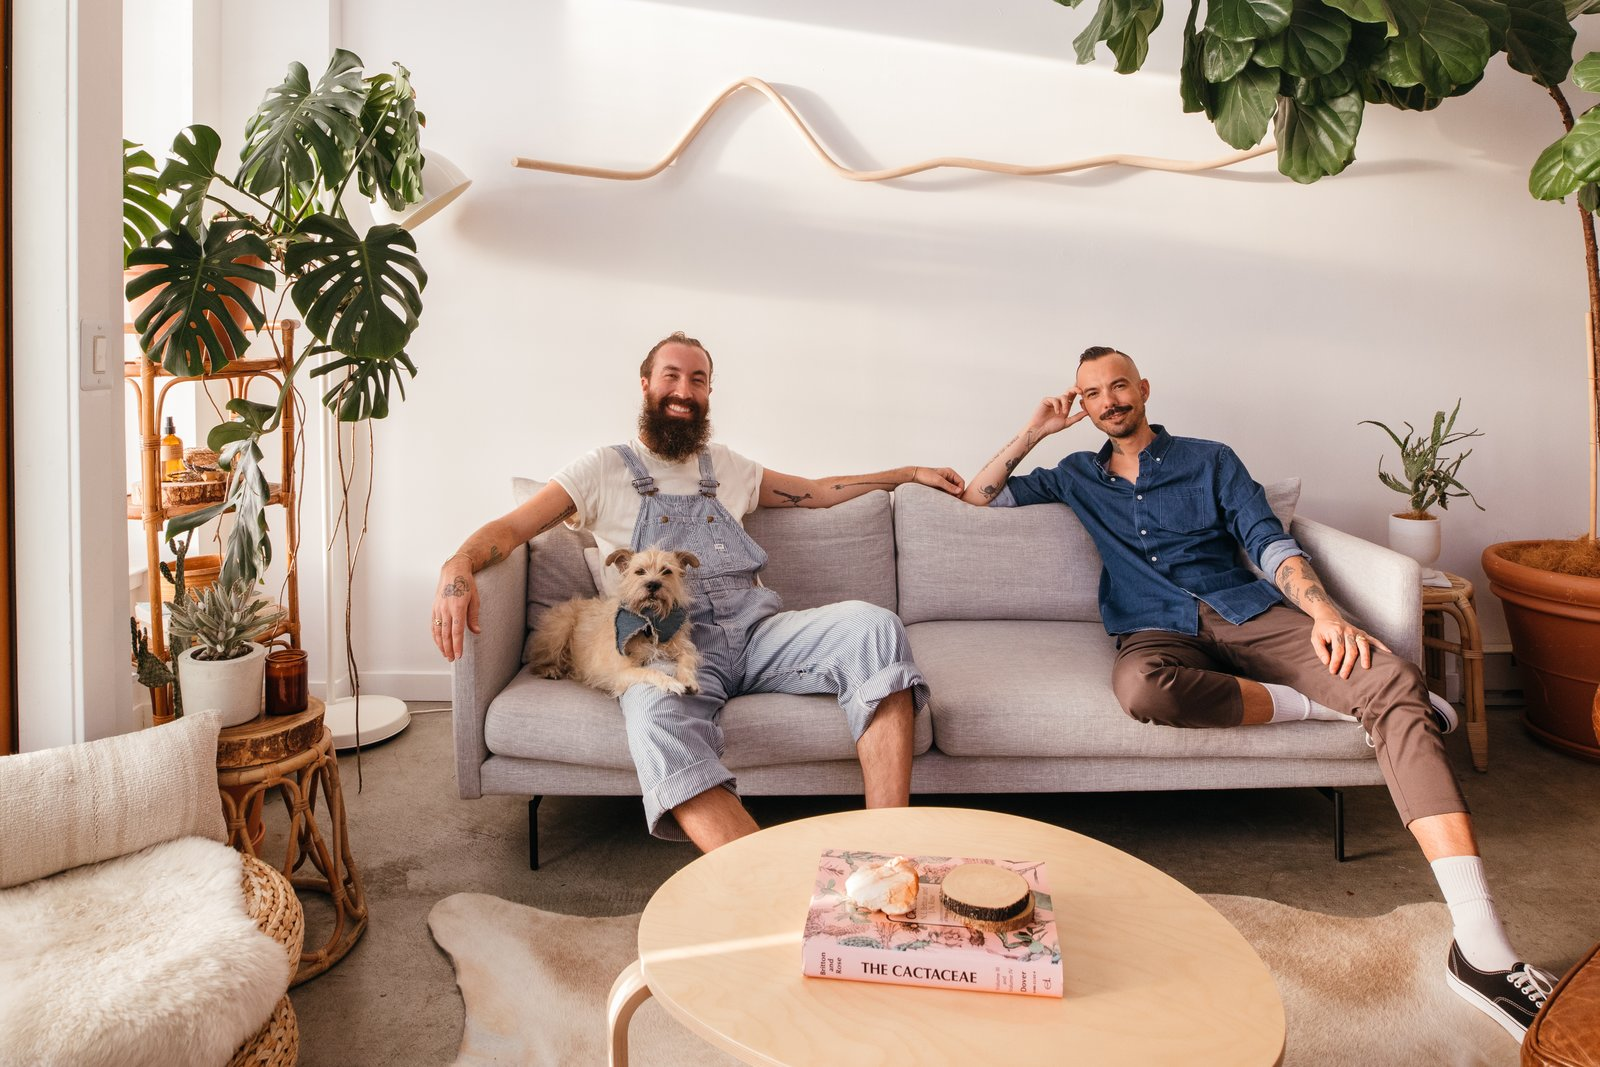 Joey the pup, Jimmy Brower, and Damien Merino chill in their live/work loft.